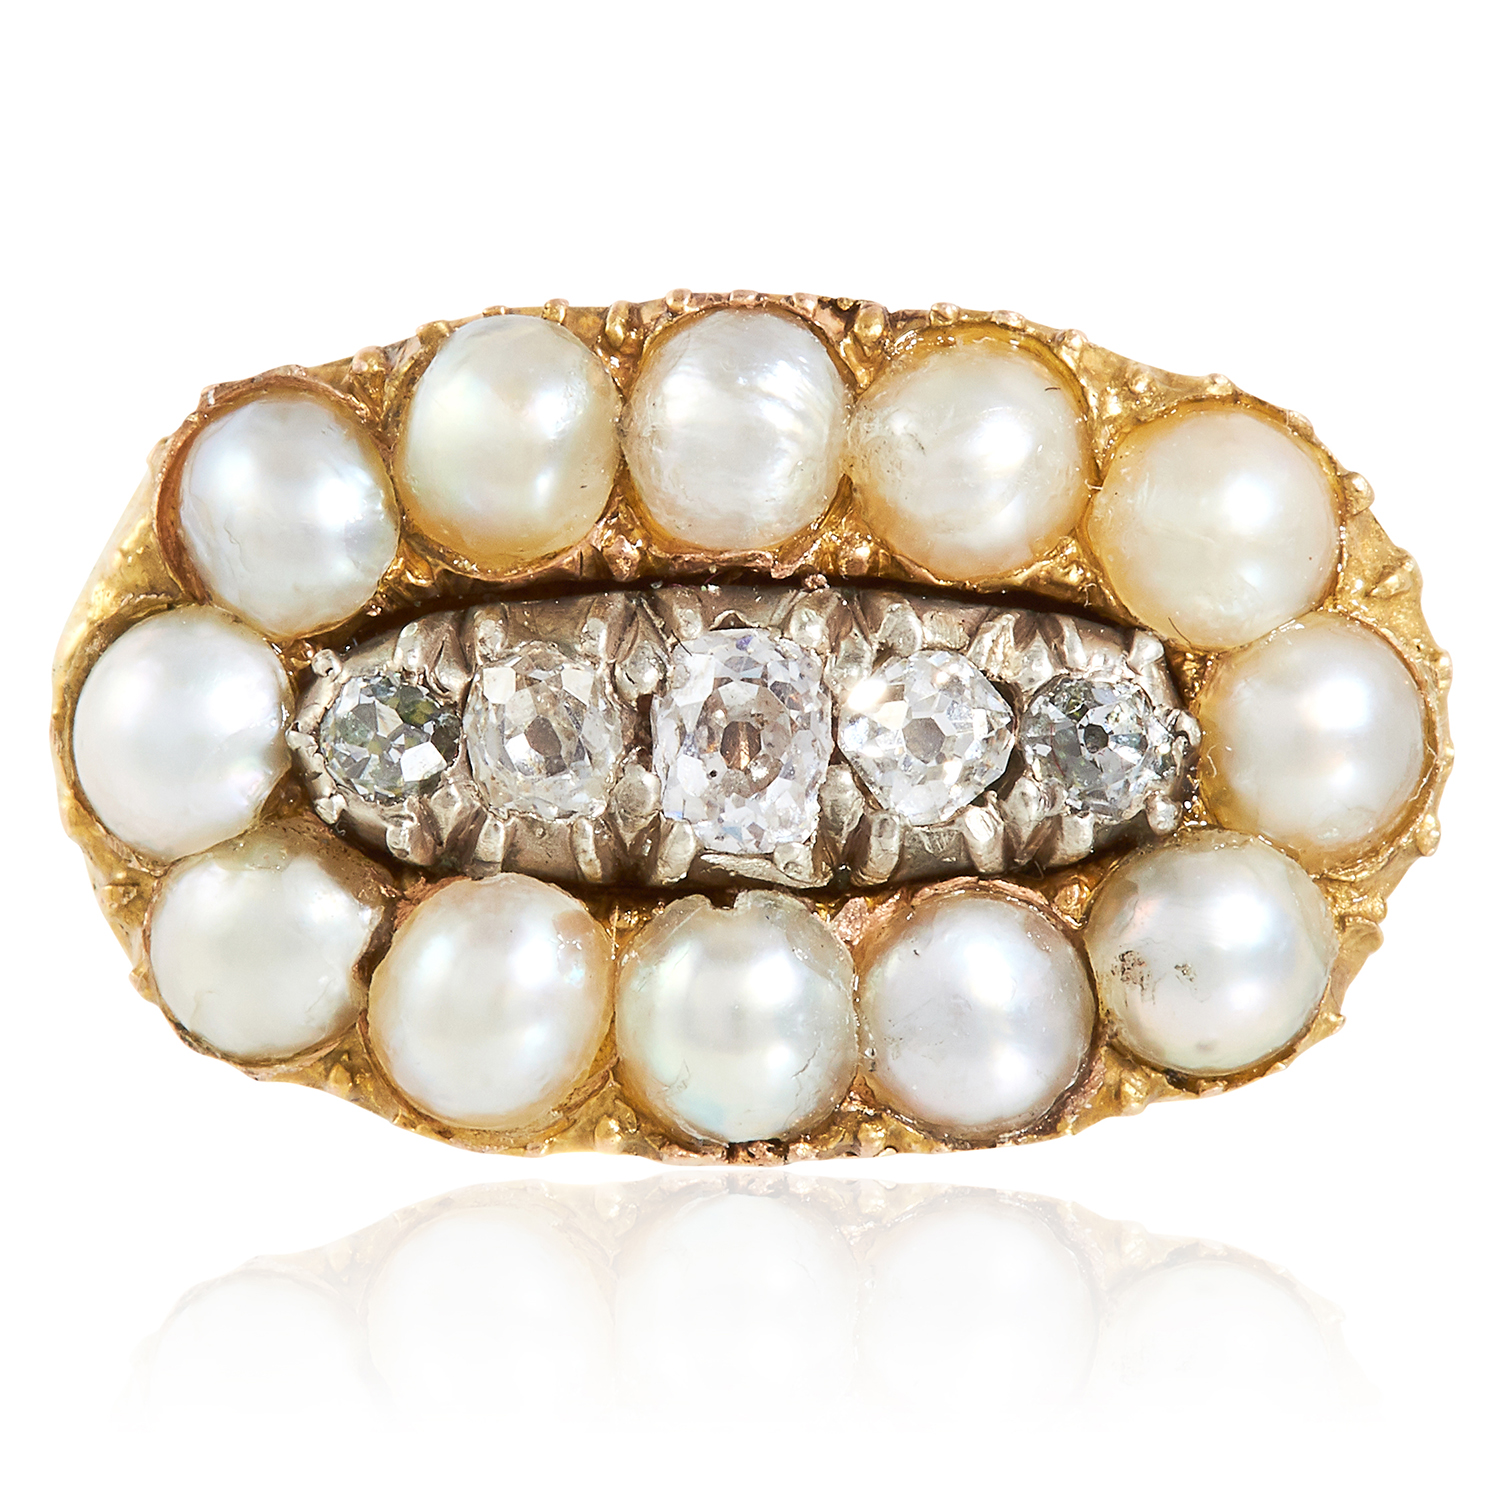 Los 49 - A PEARL AND DIAMOND DRESS RING in high carat yellow gold, set with a row of old cut diamonds in a